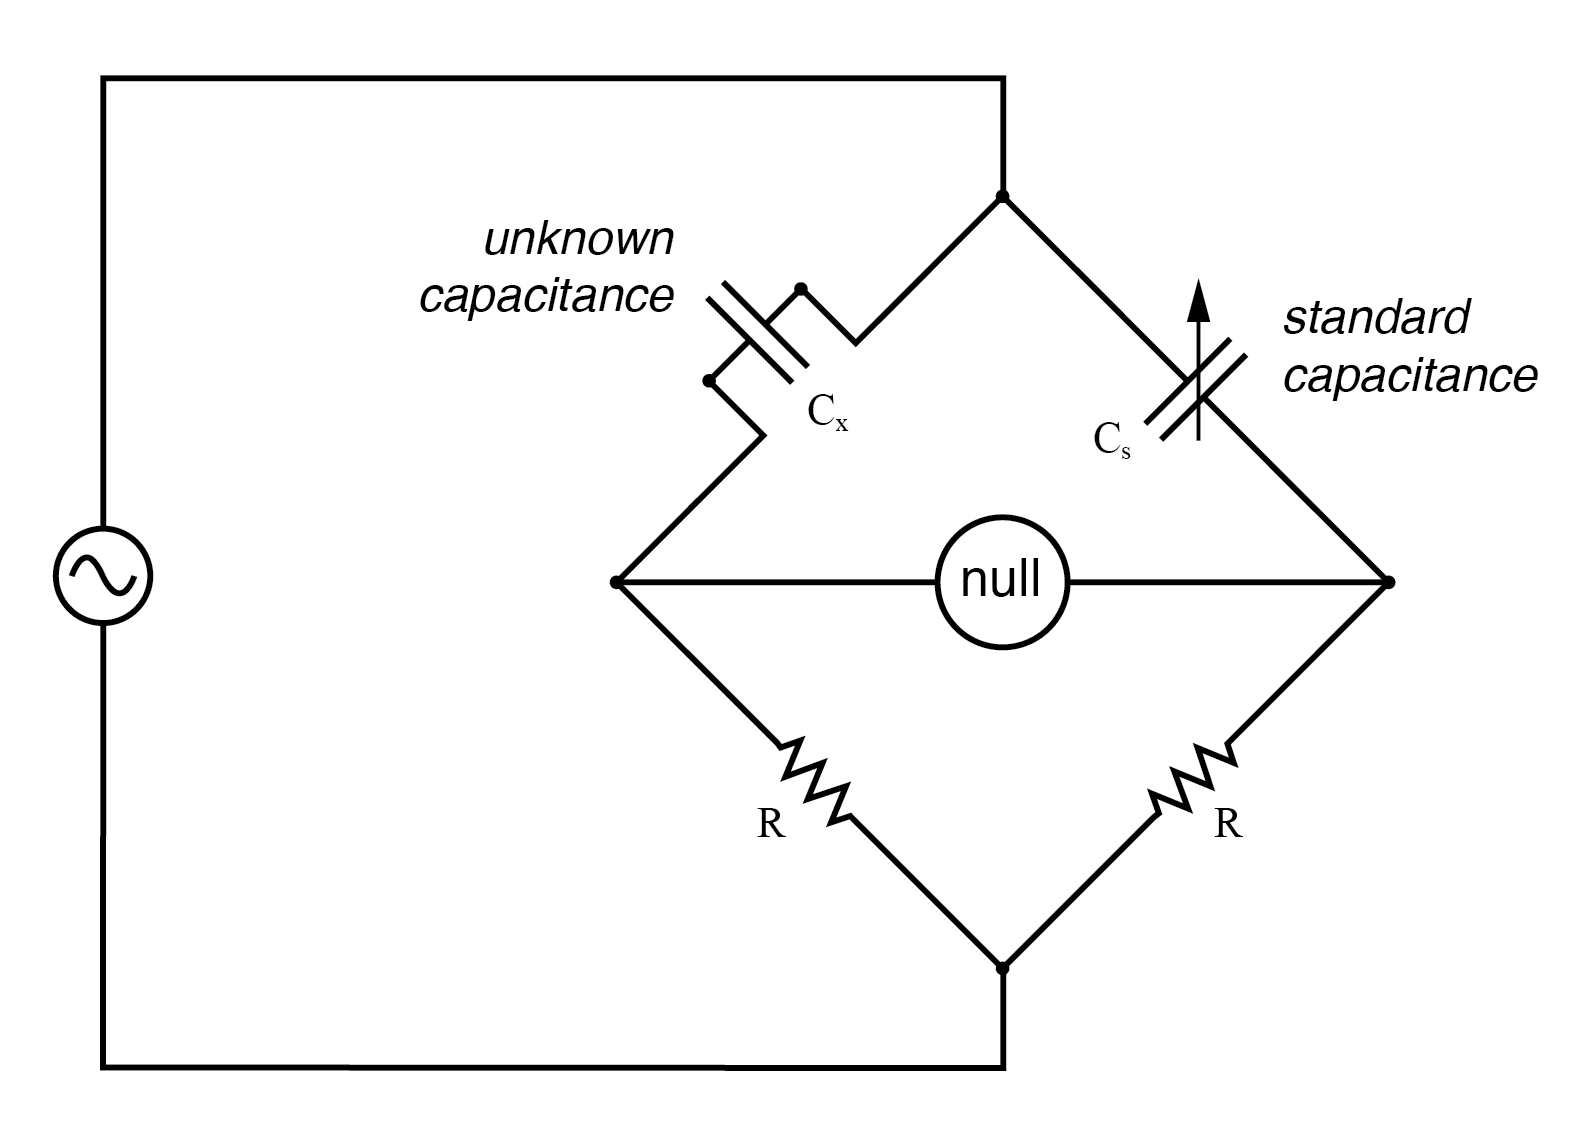 hight resolution of symmetrical bridge measures unknown capacitor by comparison to a standard capacitor